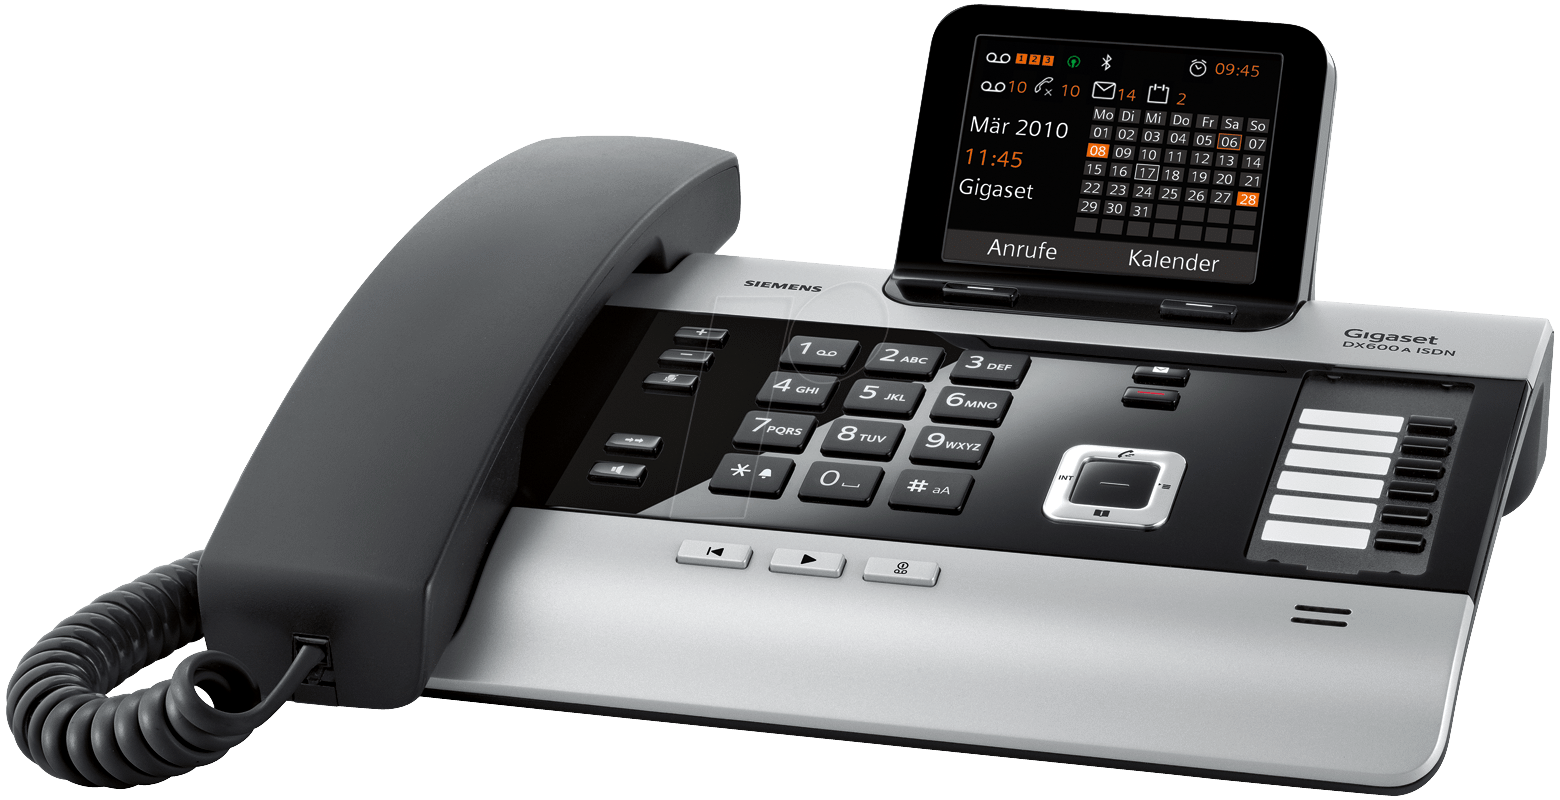 gigaset dx600a isdn telefon mit anrufbeantworter a b. Black Bedroom Furniture Sets. Home Design Ideas